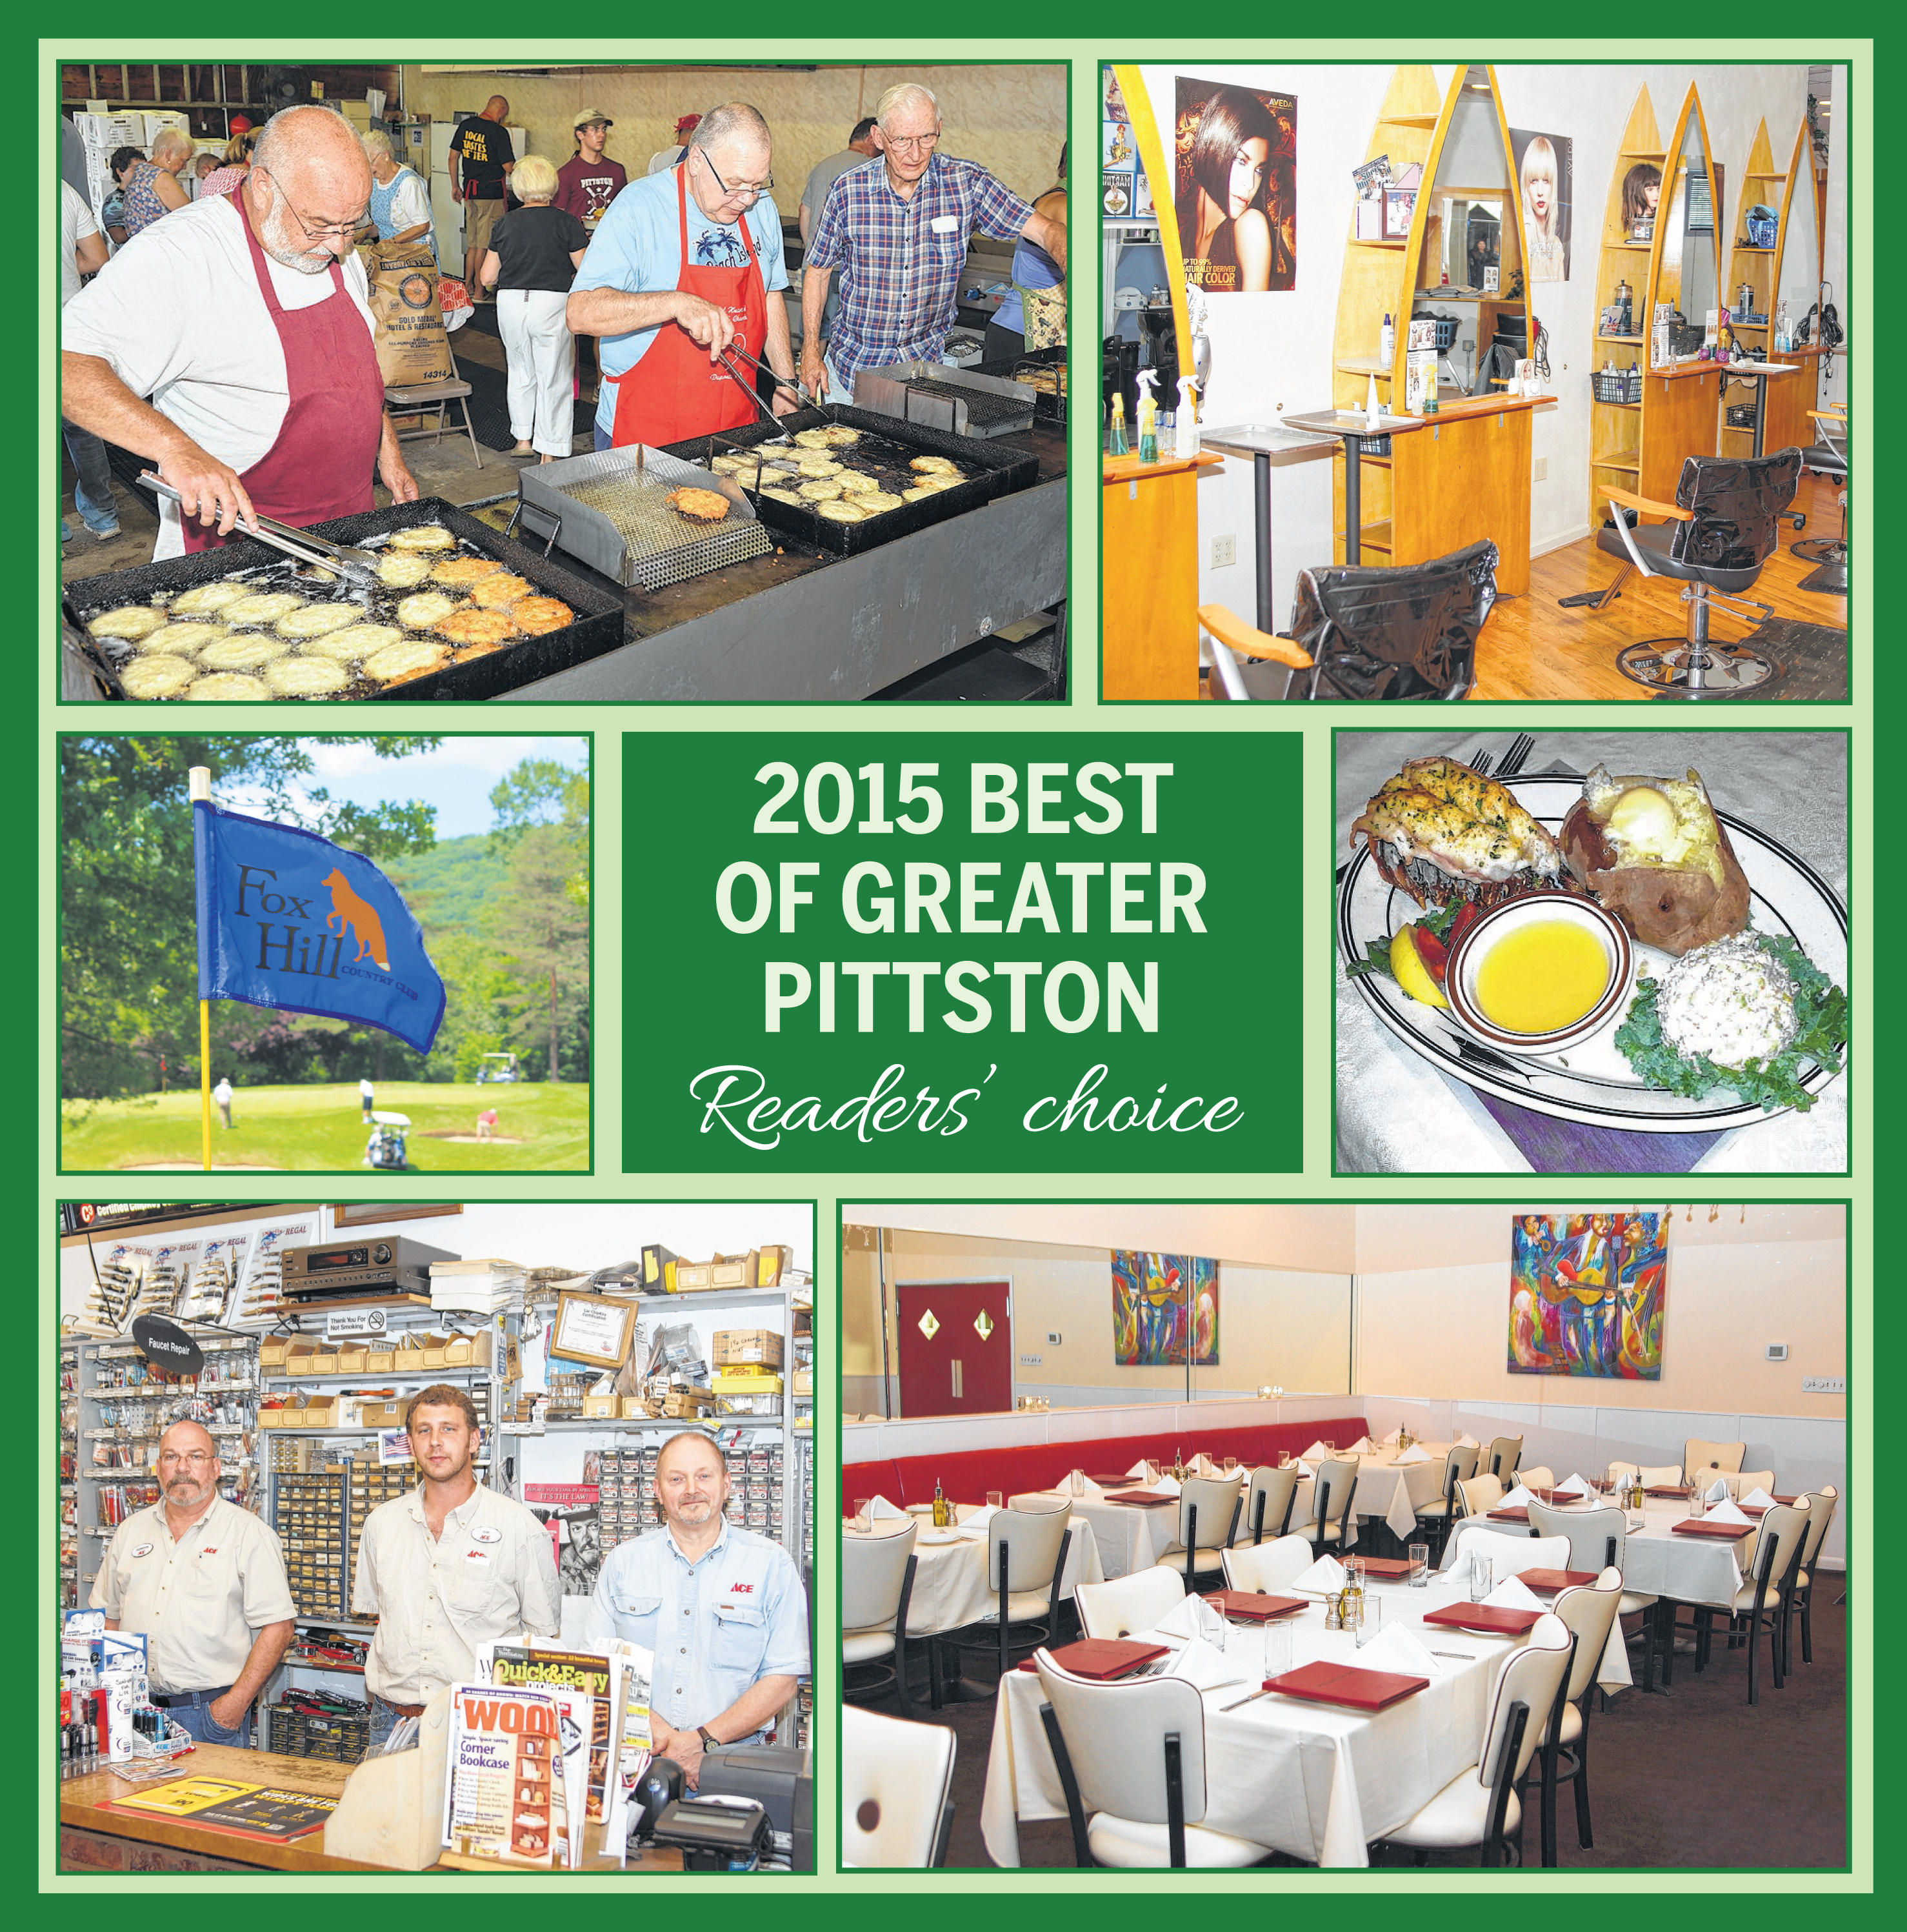 Best of Greater Pittston 2015